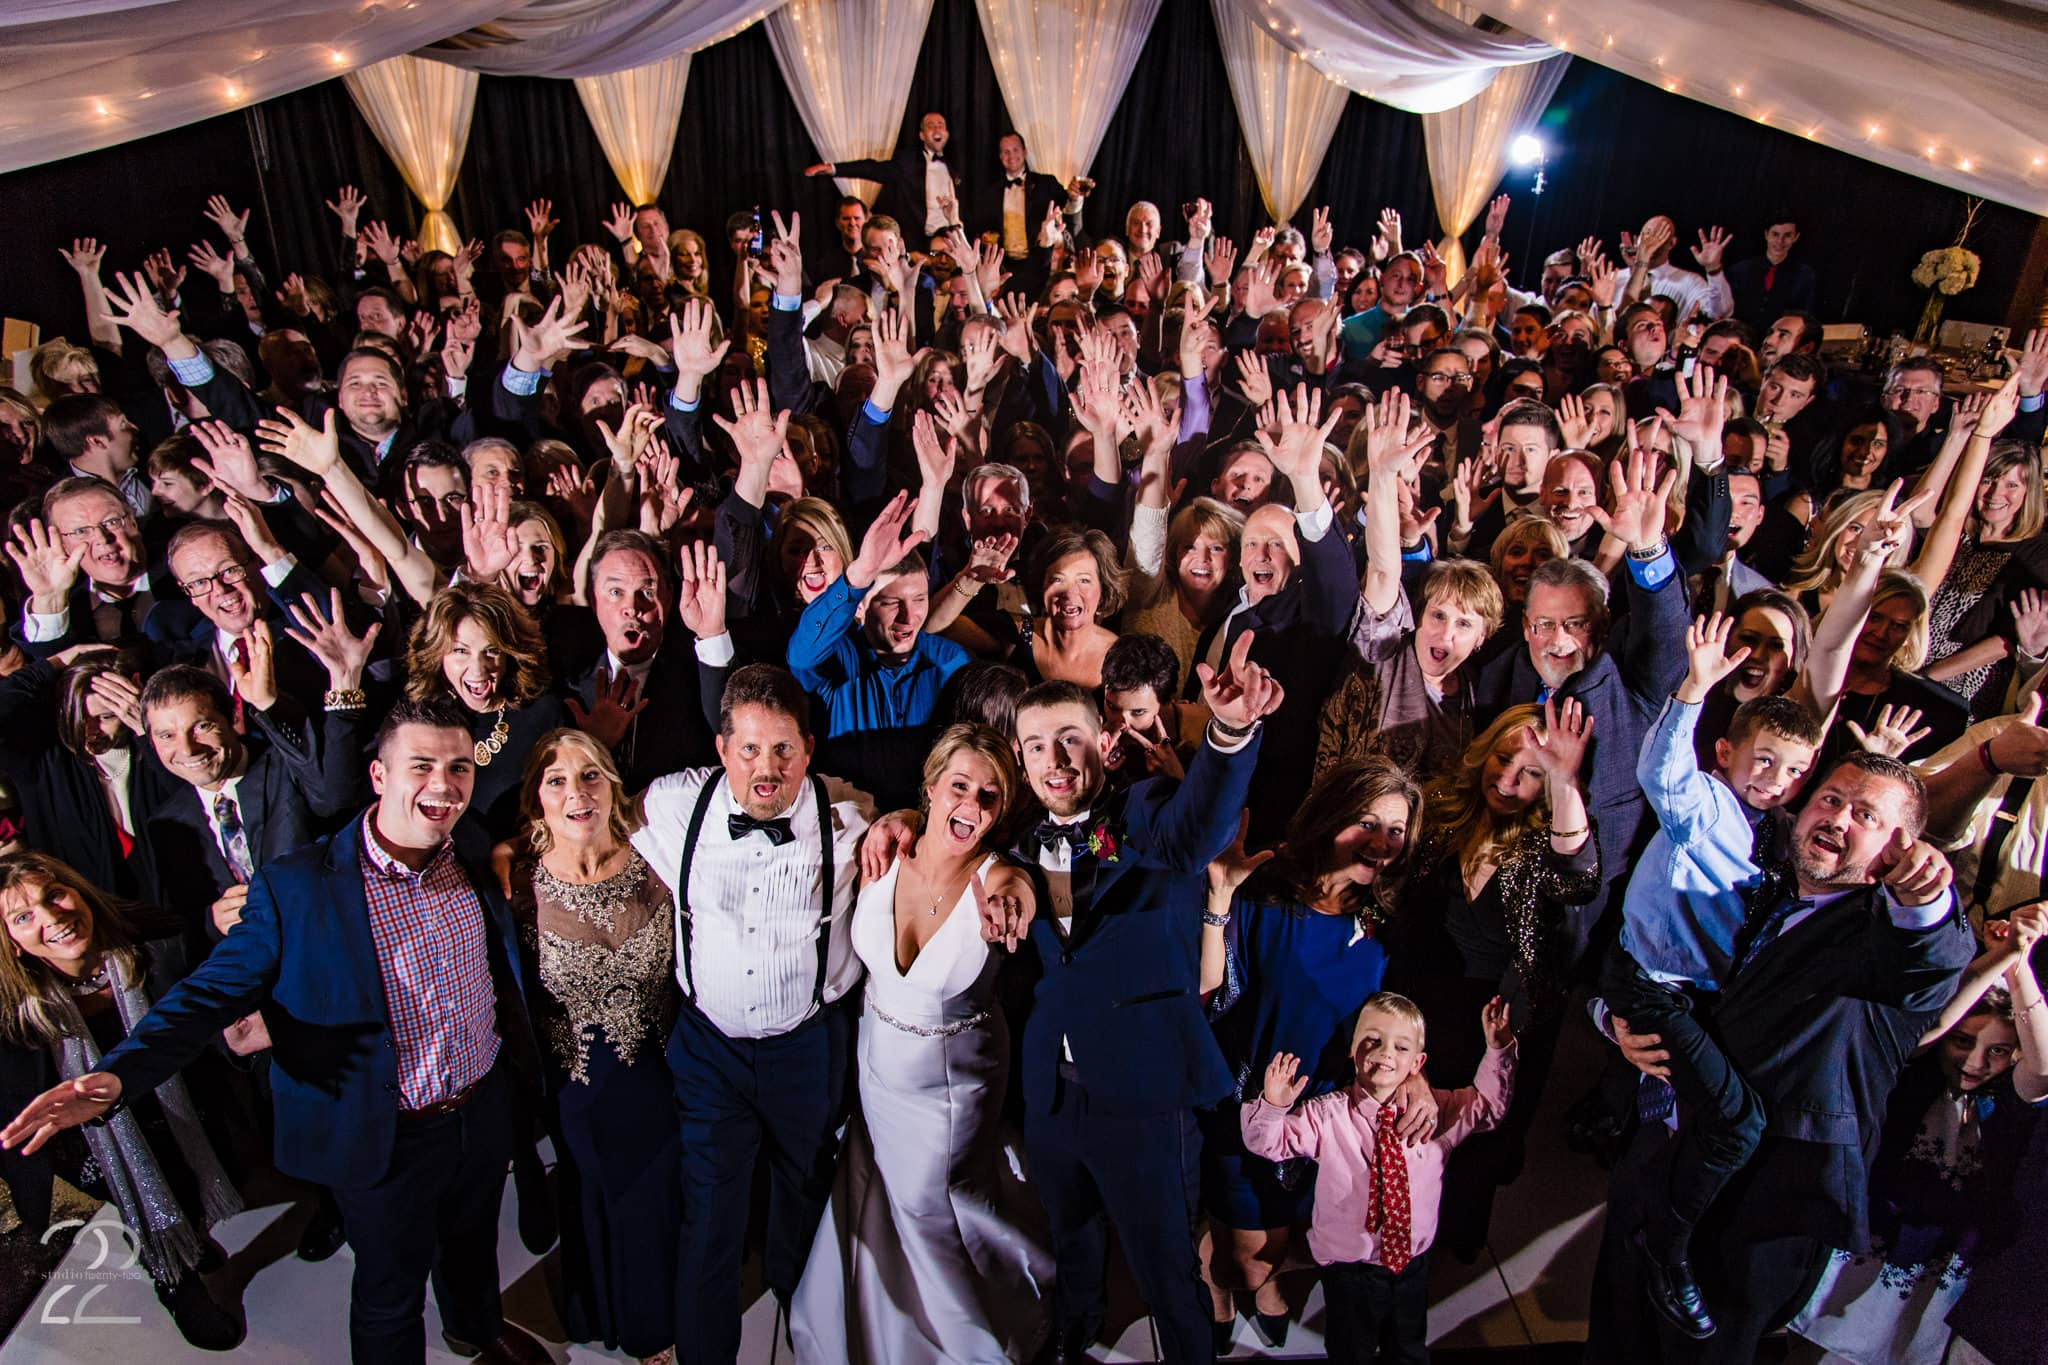 Top of the Market - DJs in Dayton - Wedding Vendors in Dayton